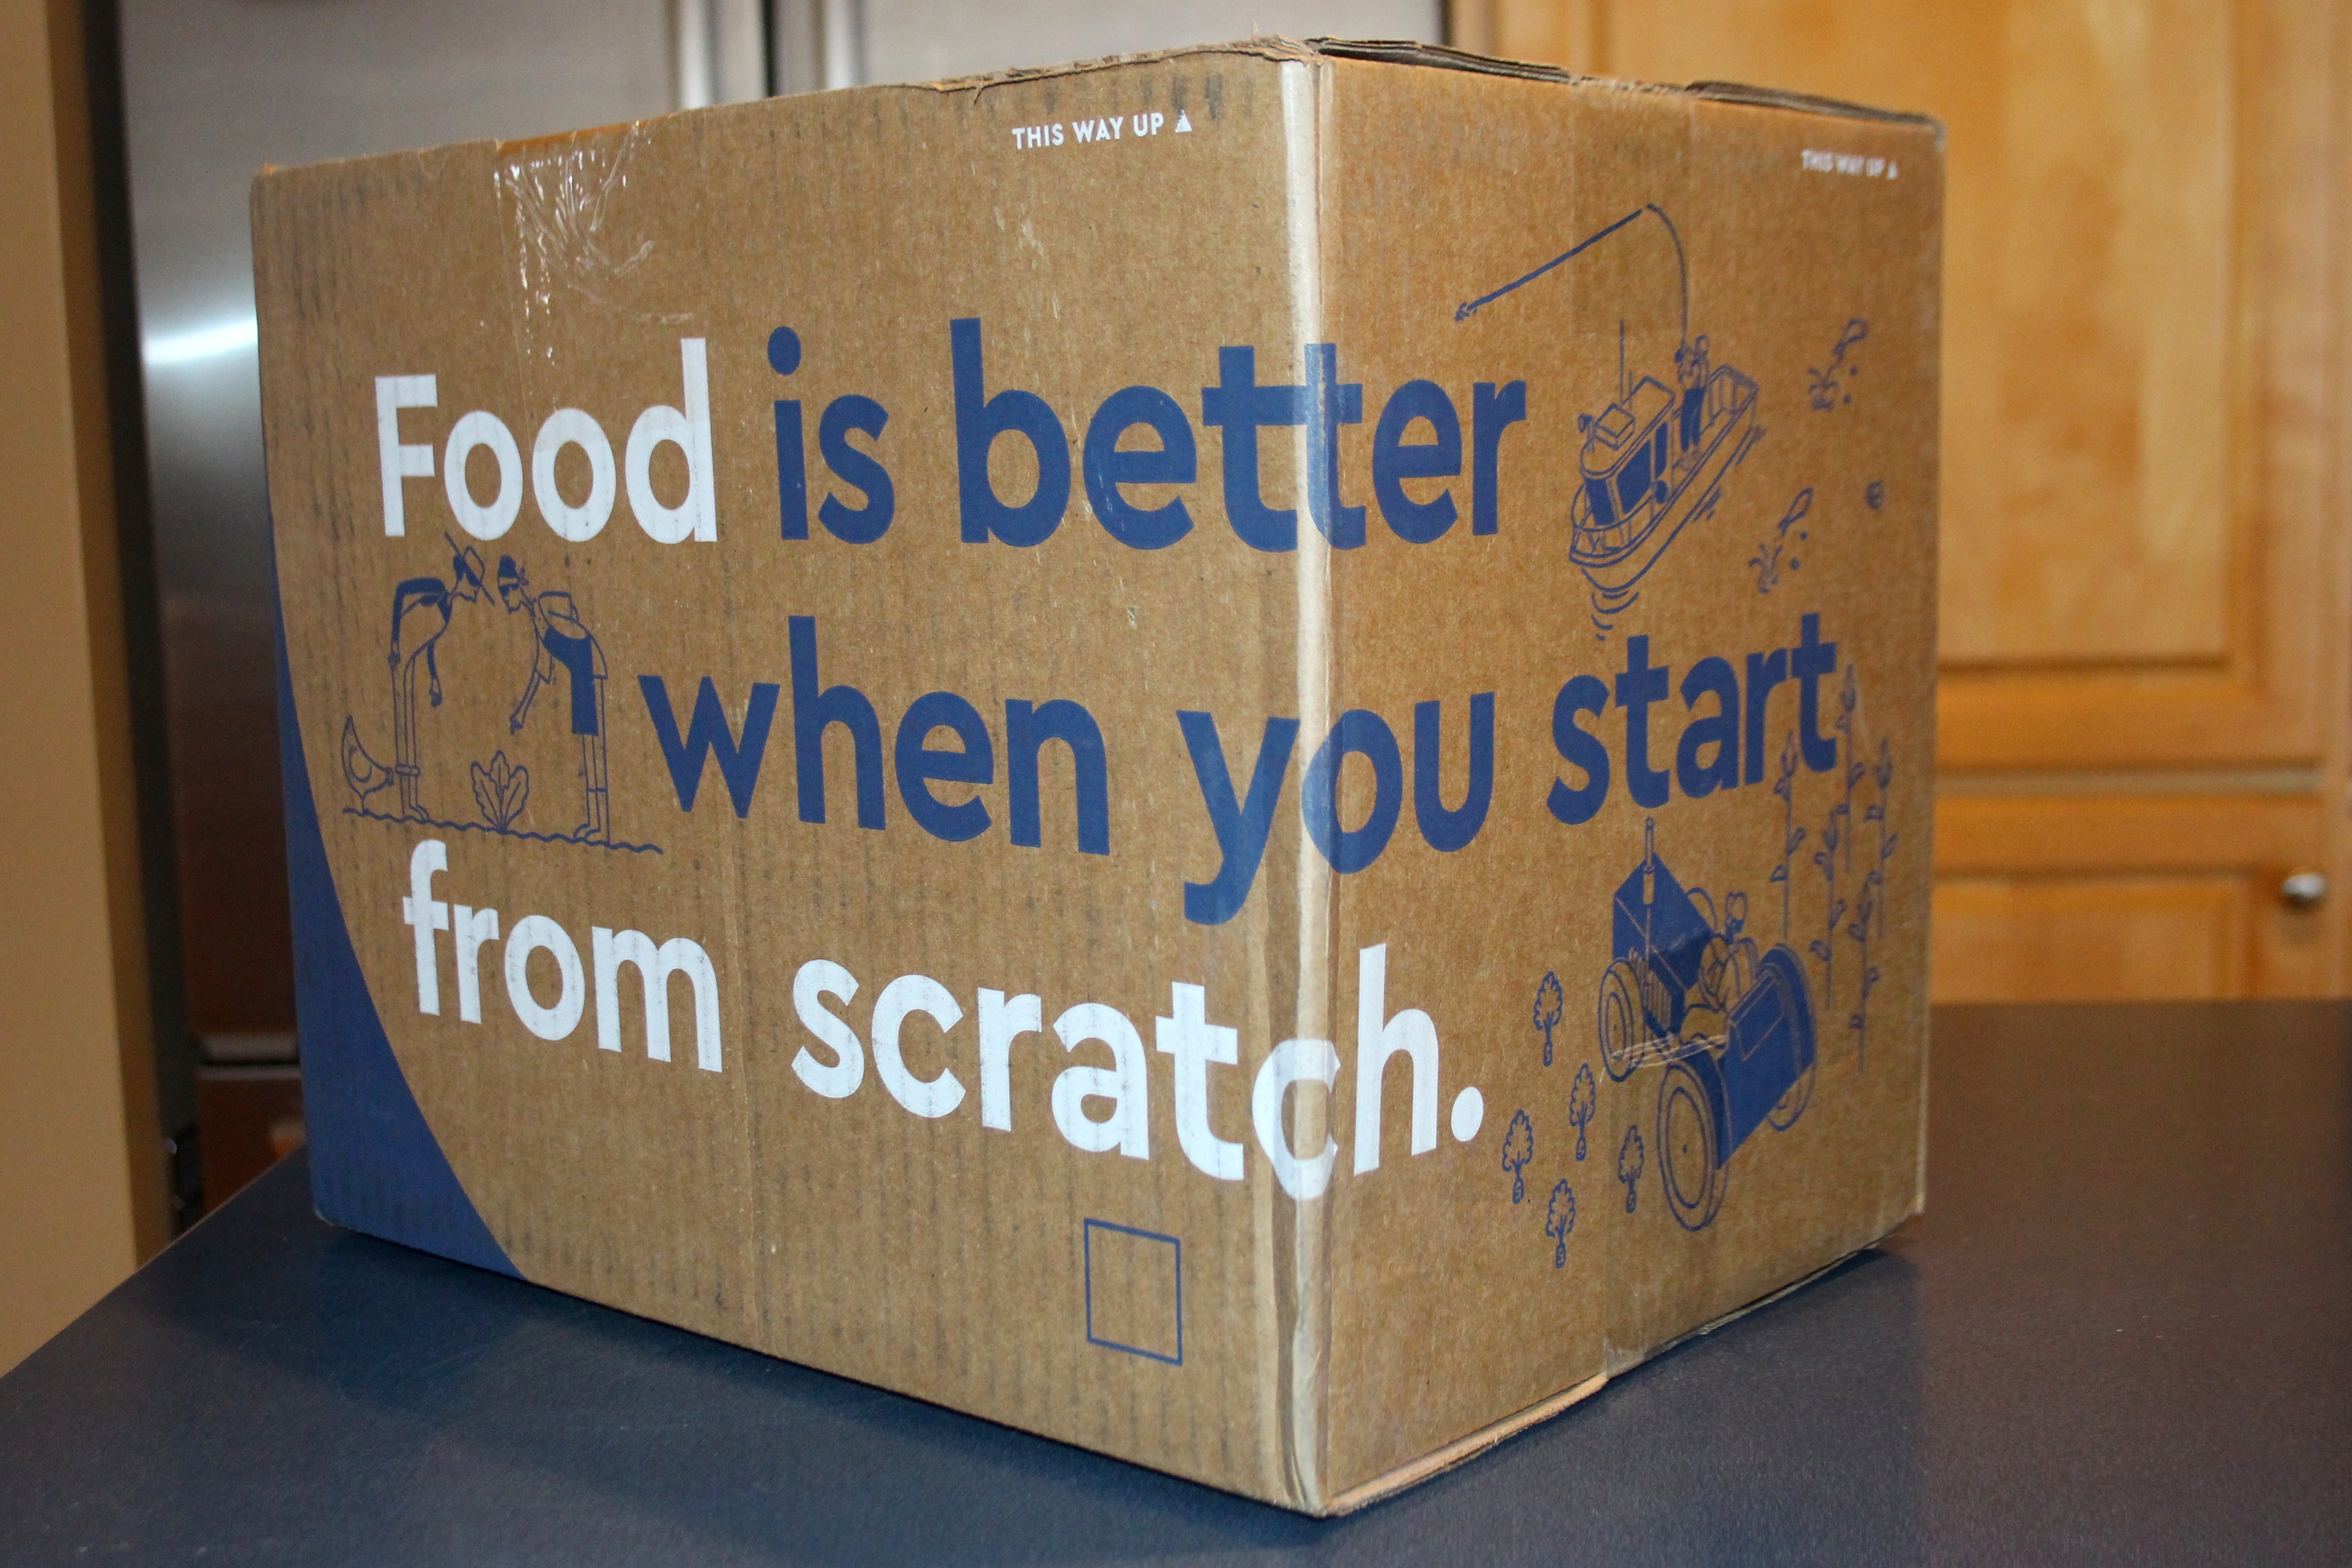 Blue apron questions - Exasperated With Wastefulness And Palette Boredom I Decided To Give Blue Apron A Try One Of The Things That Instantly Caught My Attention Was The